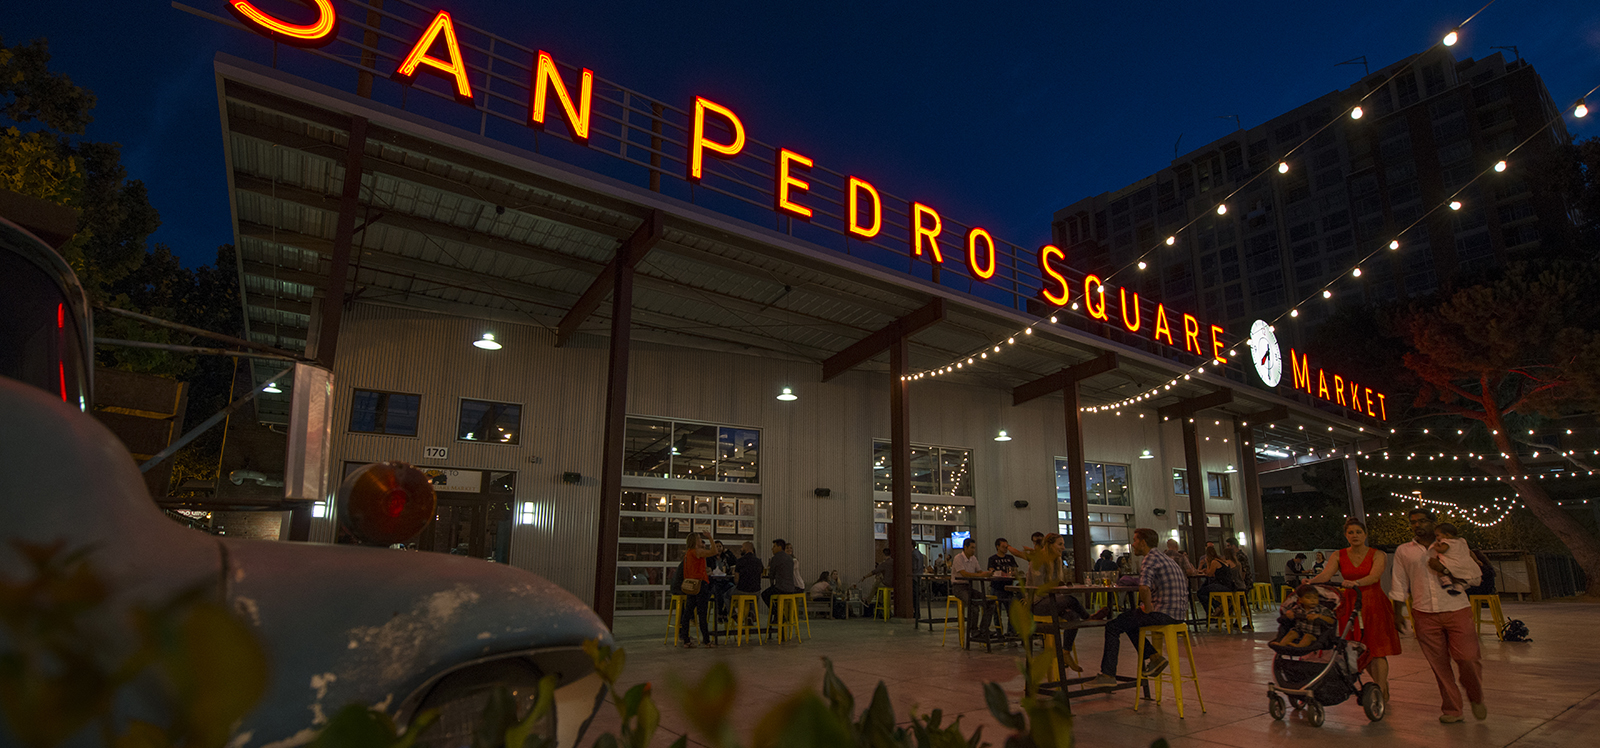 San Pedro Square Market Sign in the evening